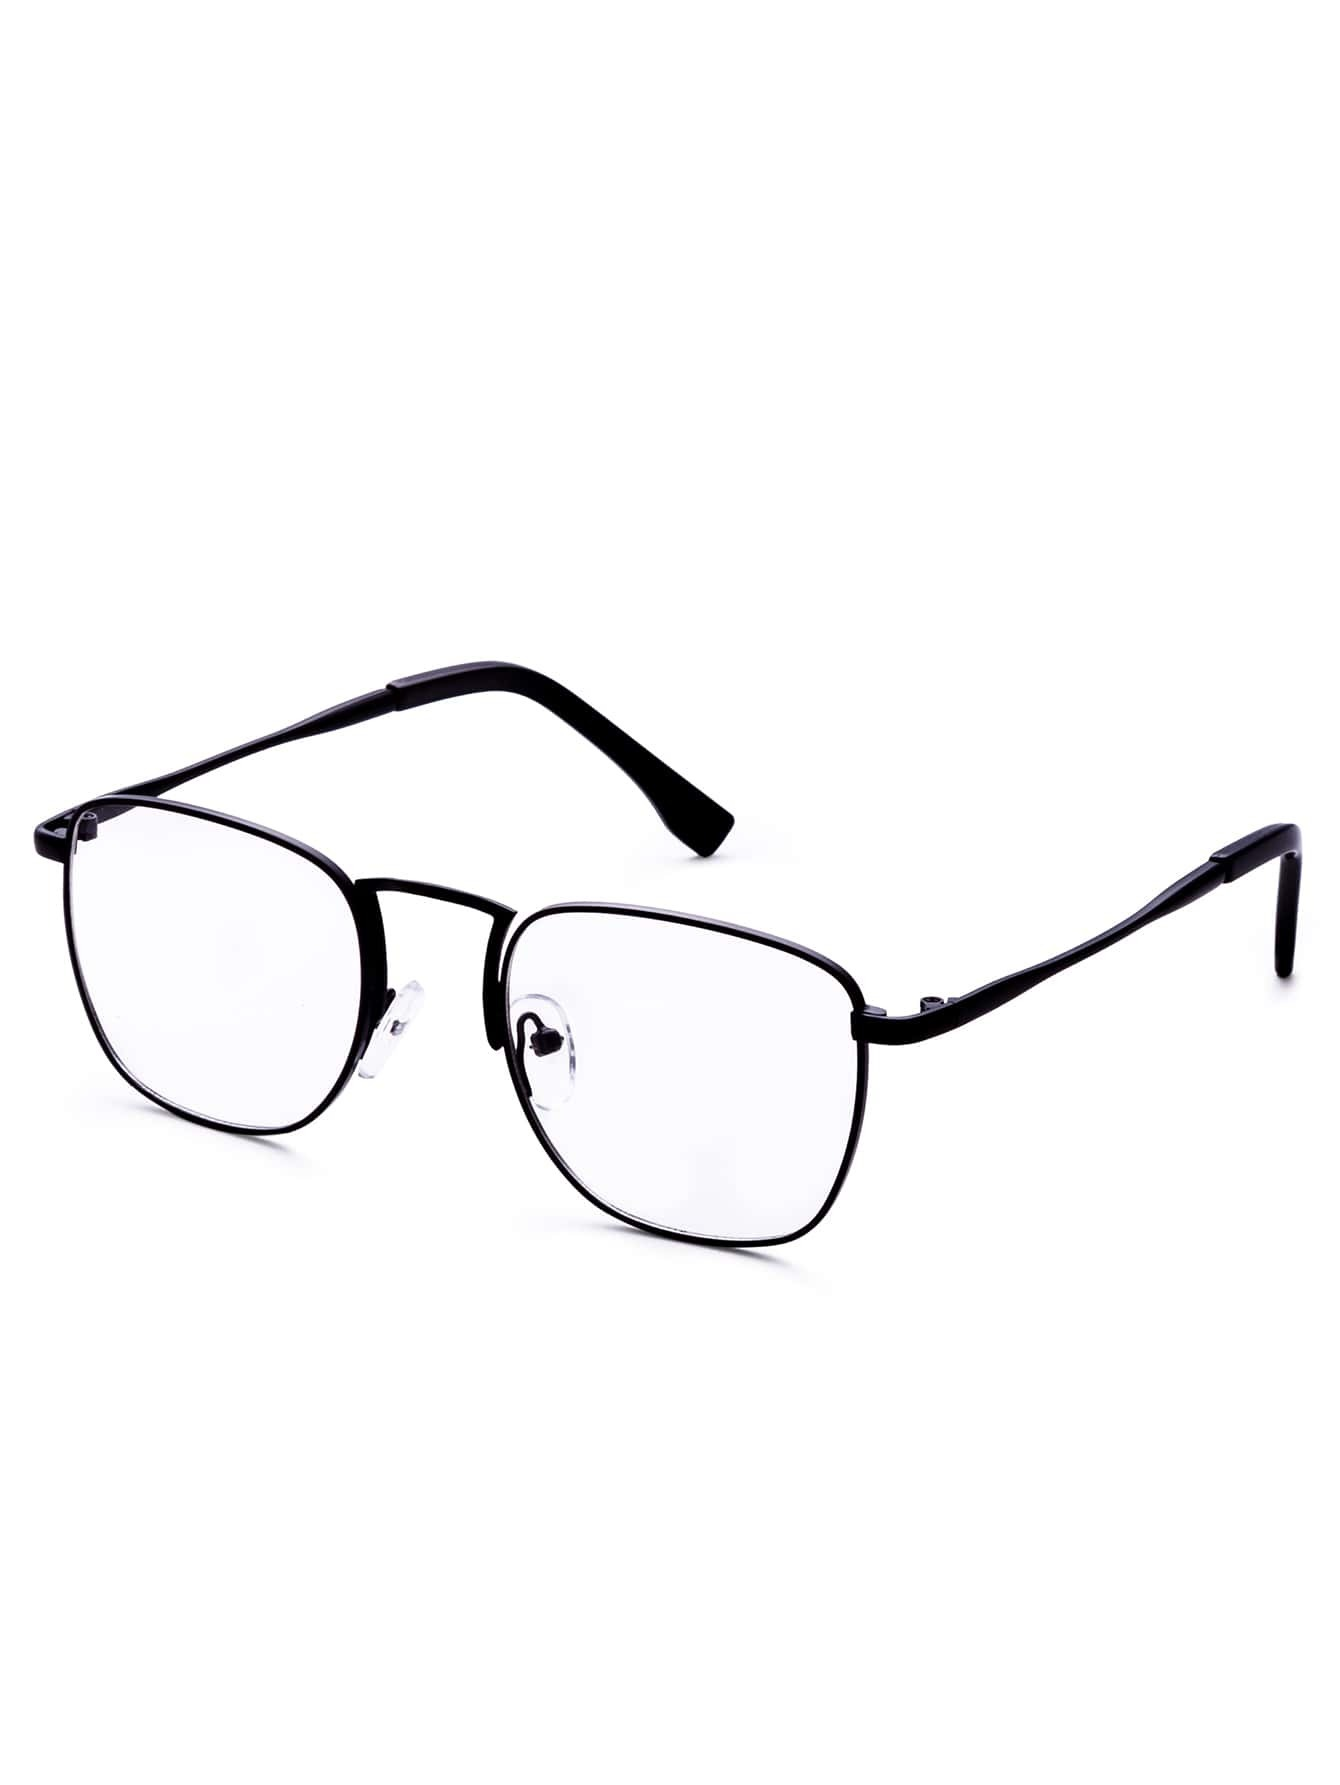 Black Frame Glasses Clear Lens : Black Frame Clear Lens Retro Glasses